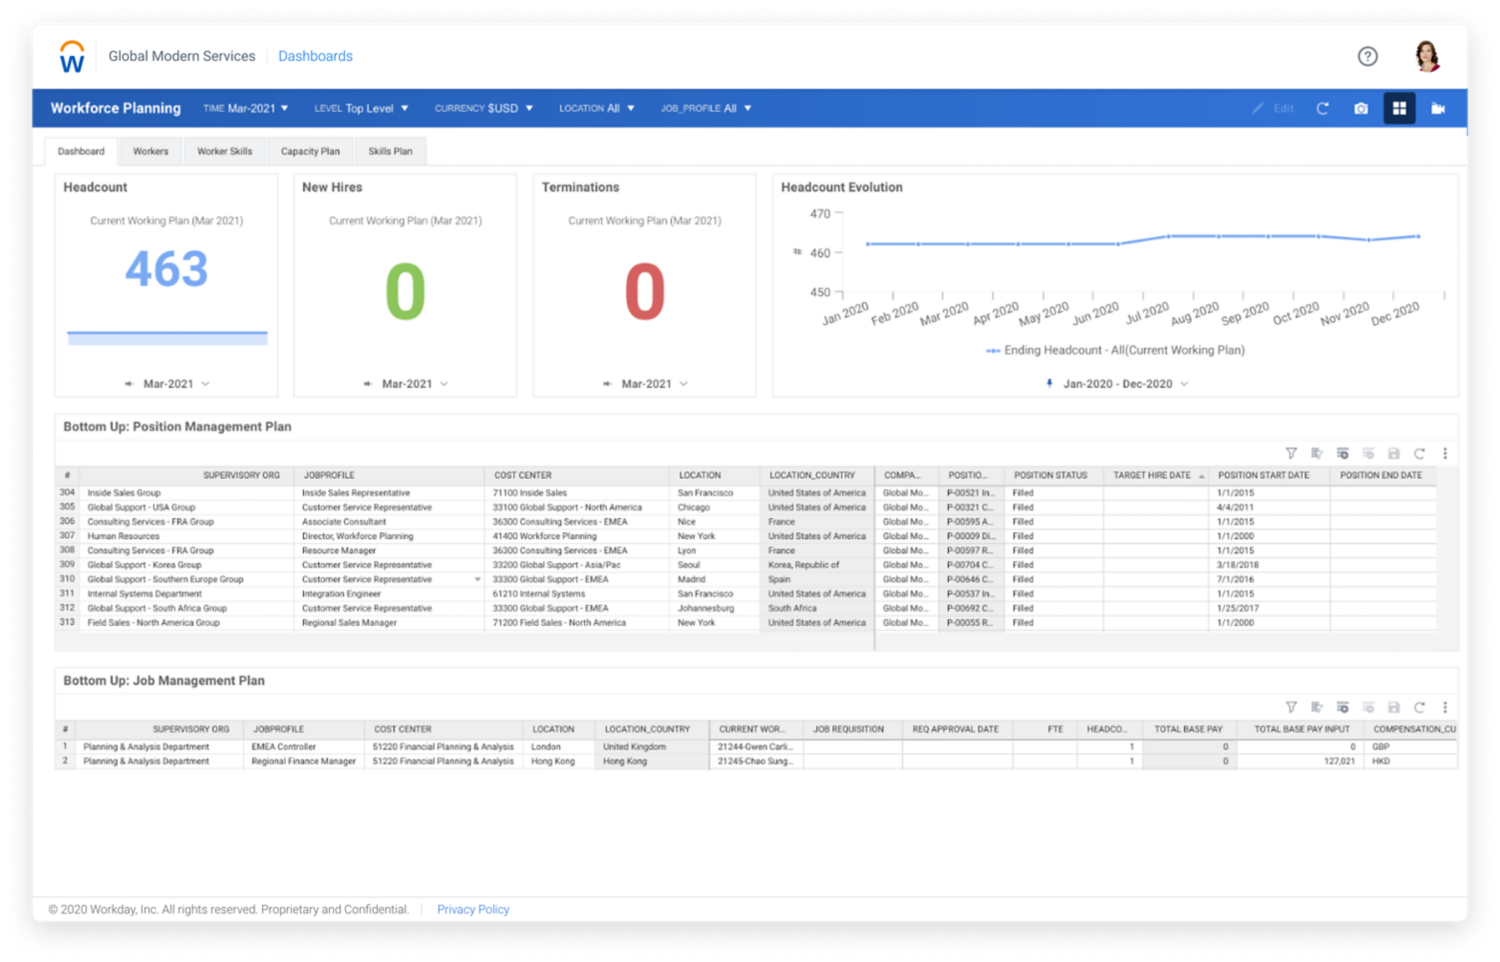 Workday Adaptive Planning Workforce Planning Dashboard showing headcount, new hires, terminations, trends, and bottom-up position and job management plans.